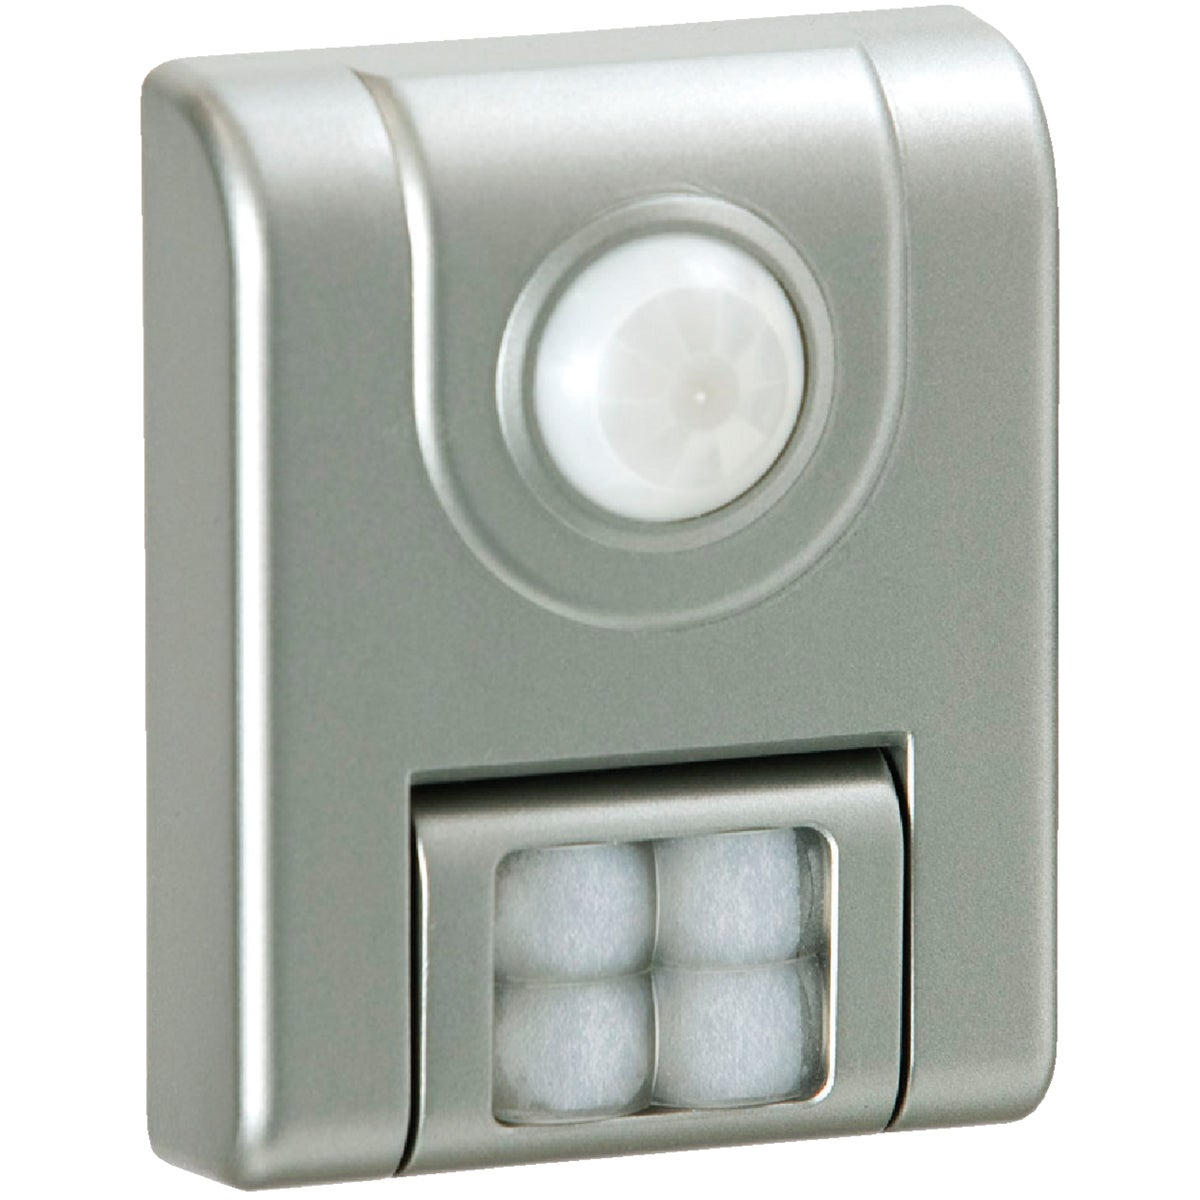 4 LED SENSOR LIGHT - 20043-301 by Fulcrum Products, Inc